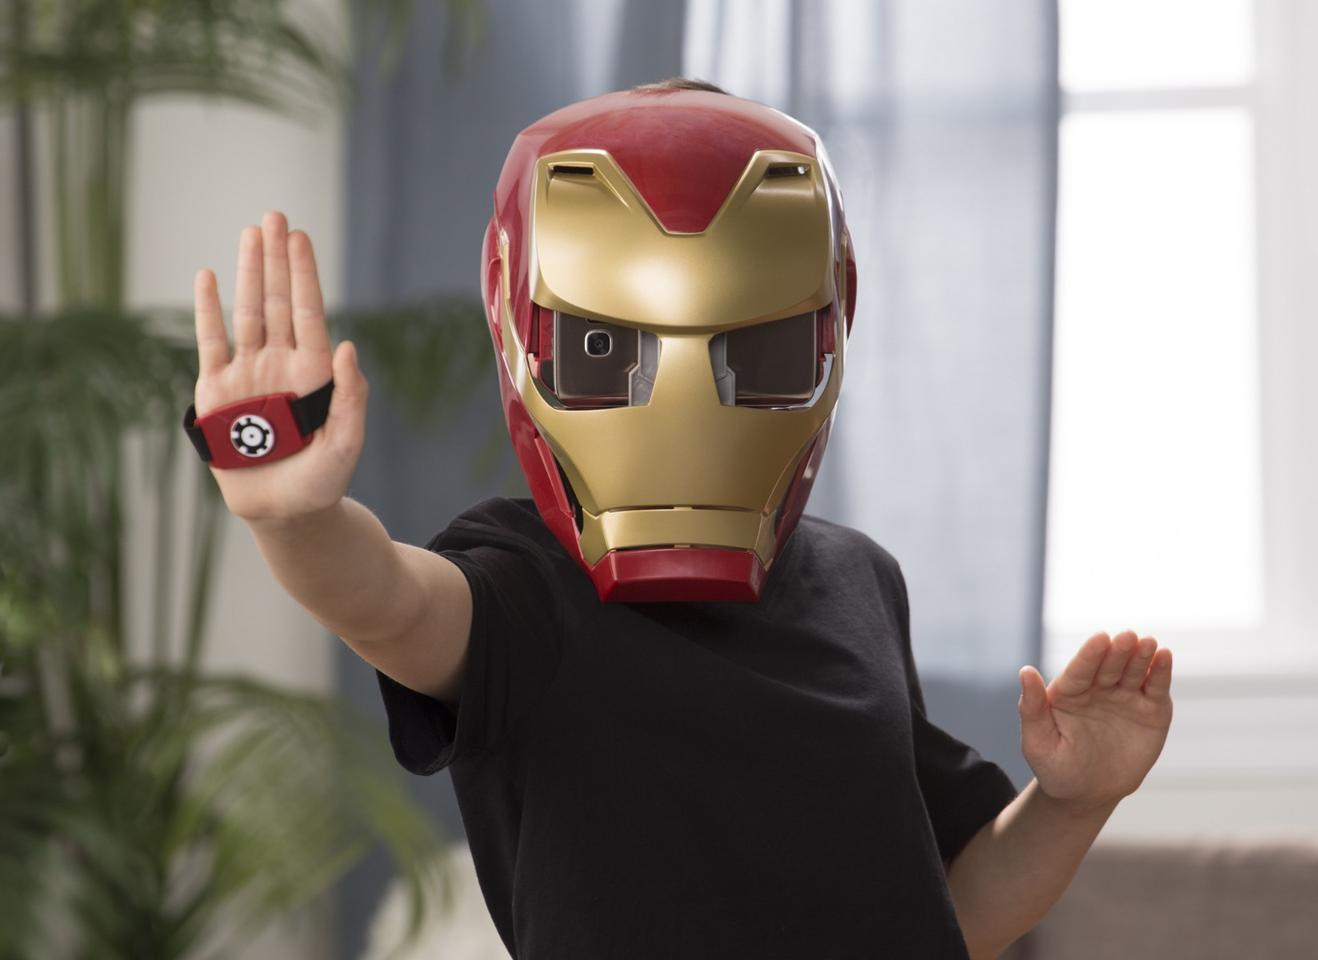 The Iron Man AR Experience lets kids play out their superhero wishes in Augmented Reality